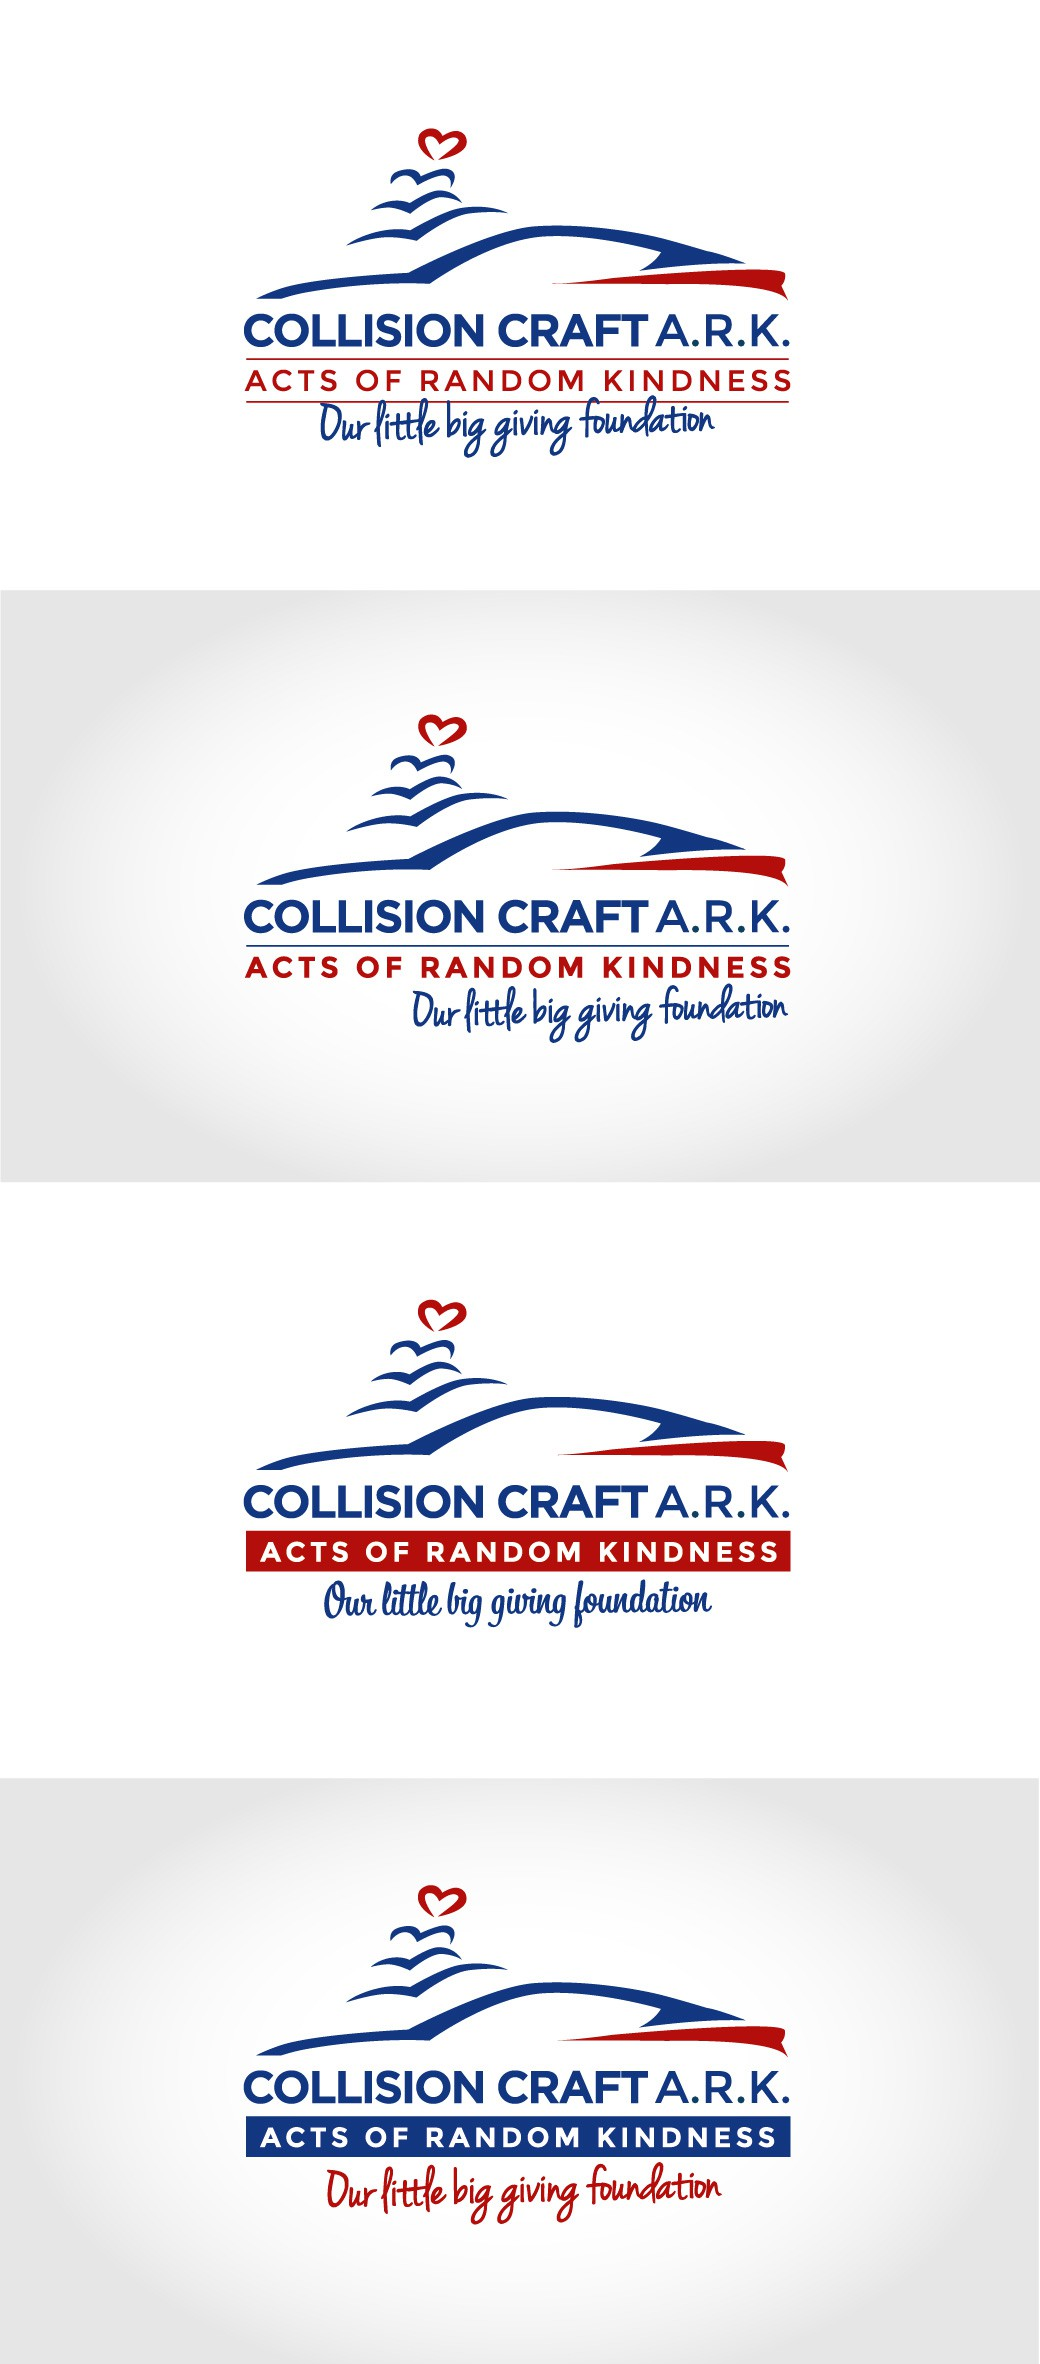 Create a logo for our charitable, giving foundation